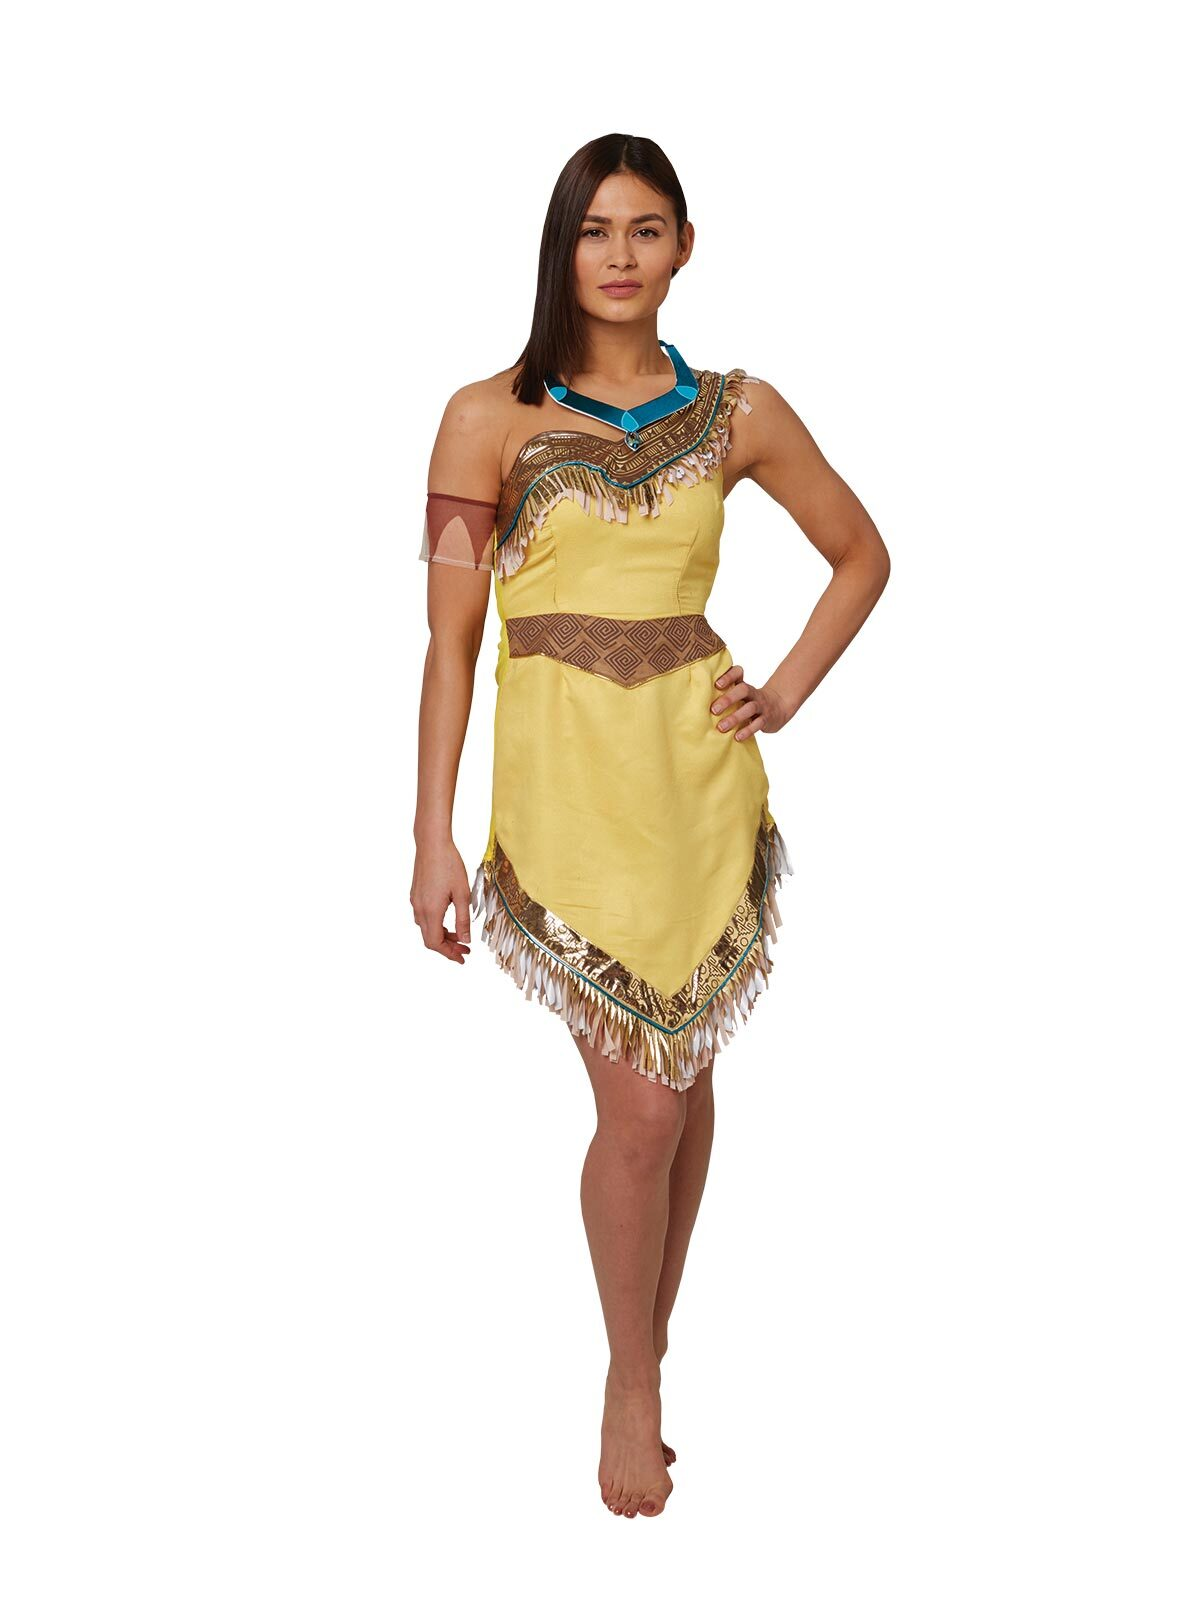 Pocahontas Deluxe Costume - Buy Online Only